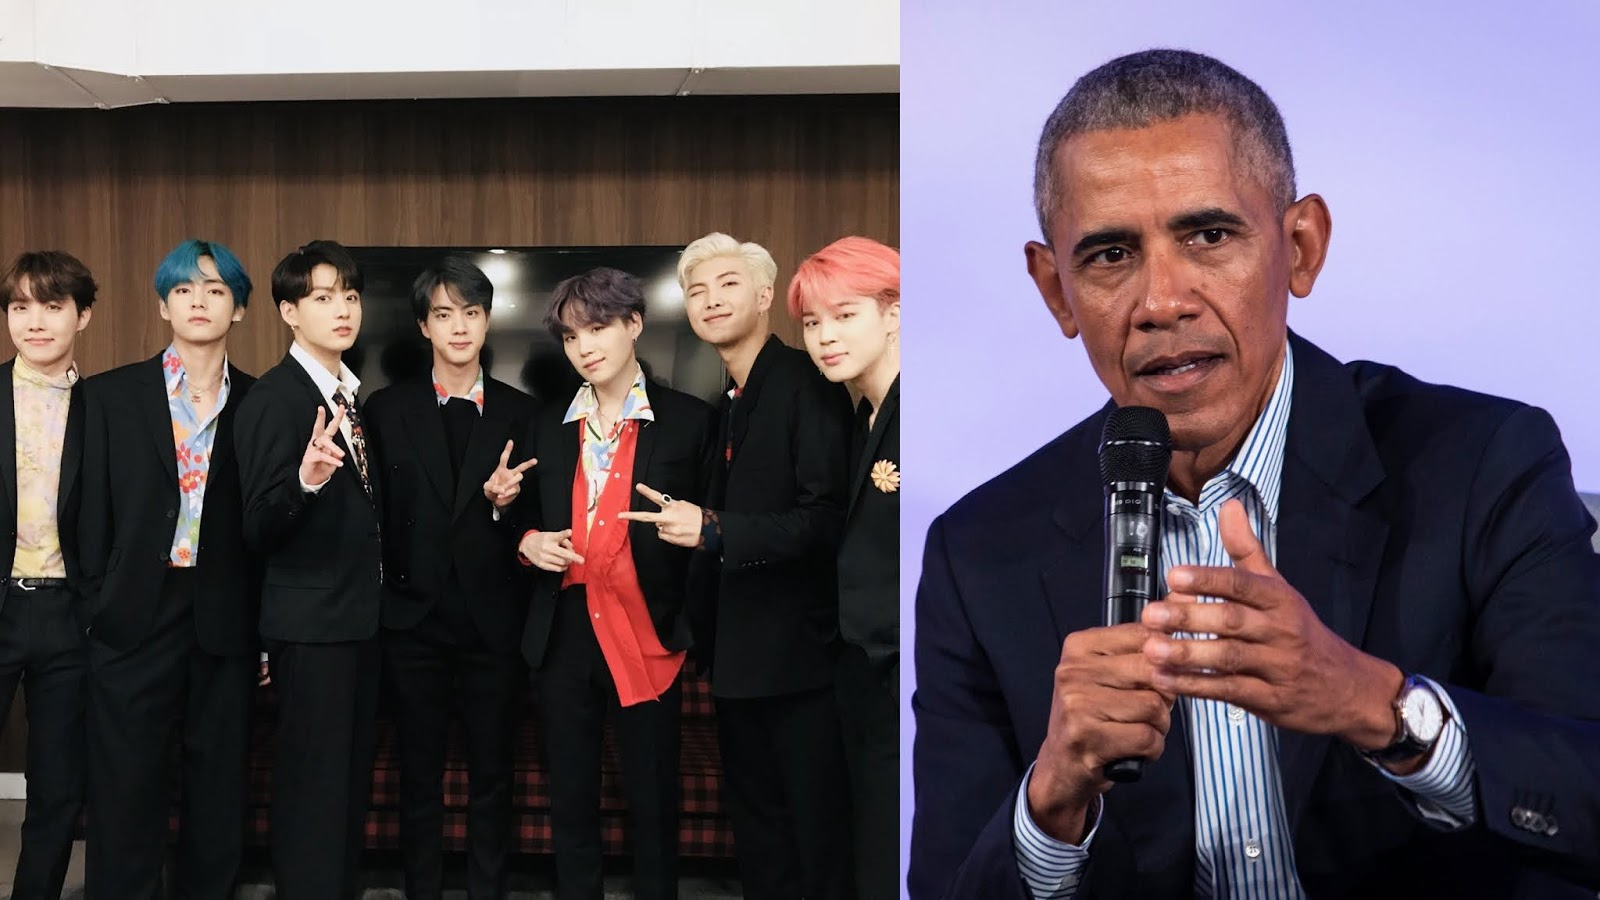 BTS Will Speech At The Same Event as Barack Obama, This is Korean Netizens Reaction